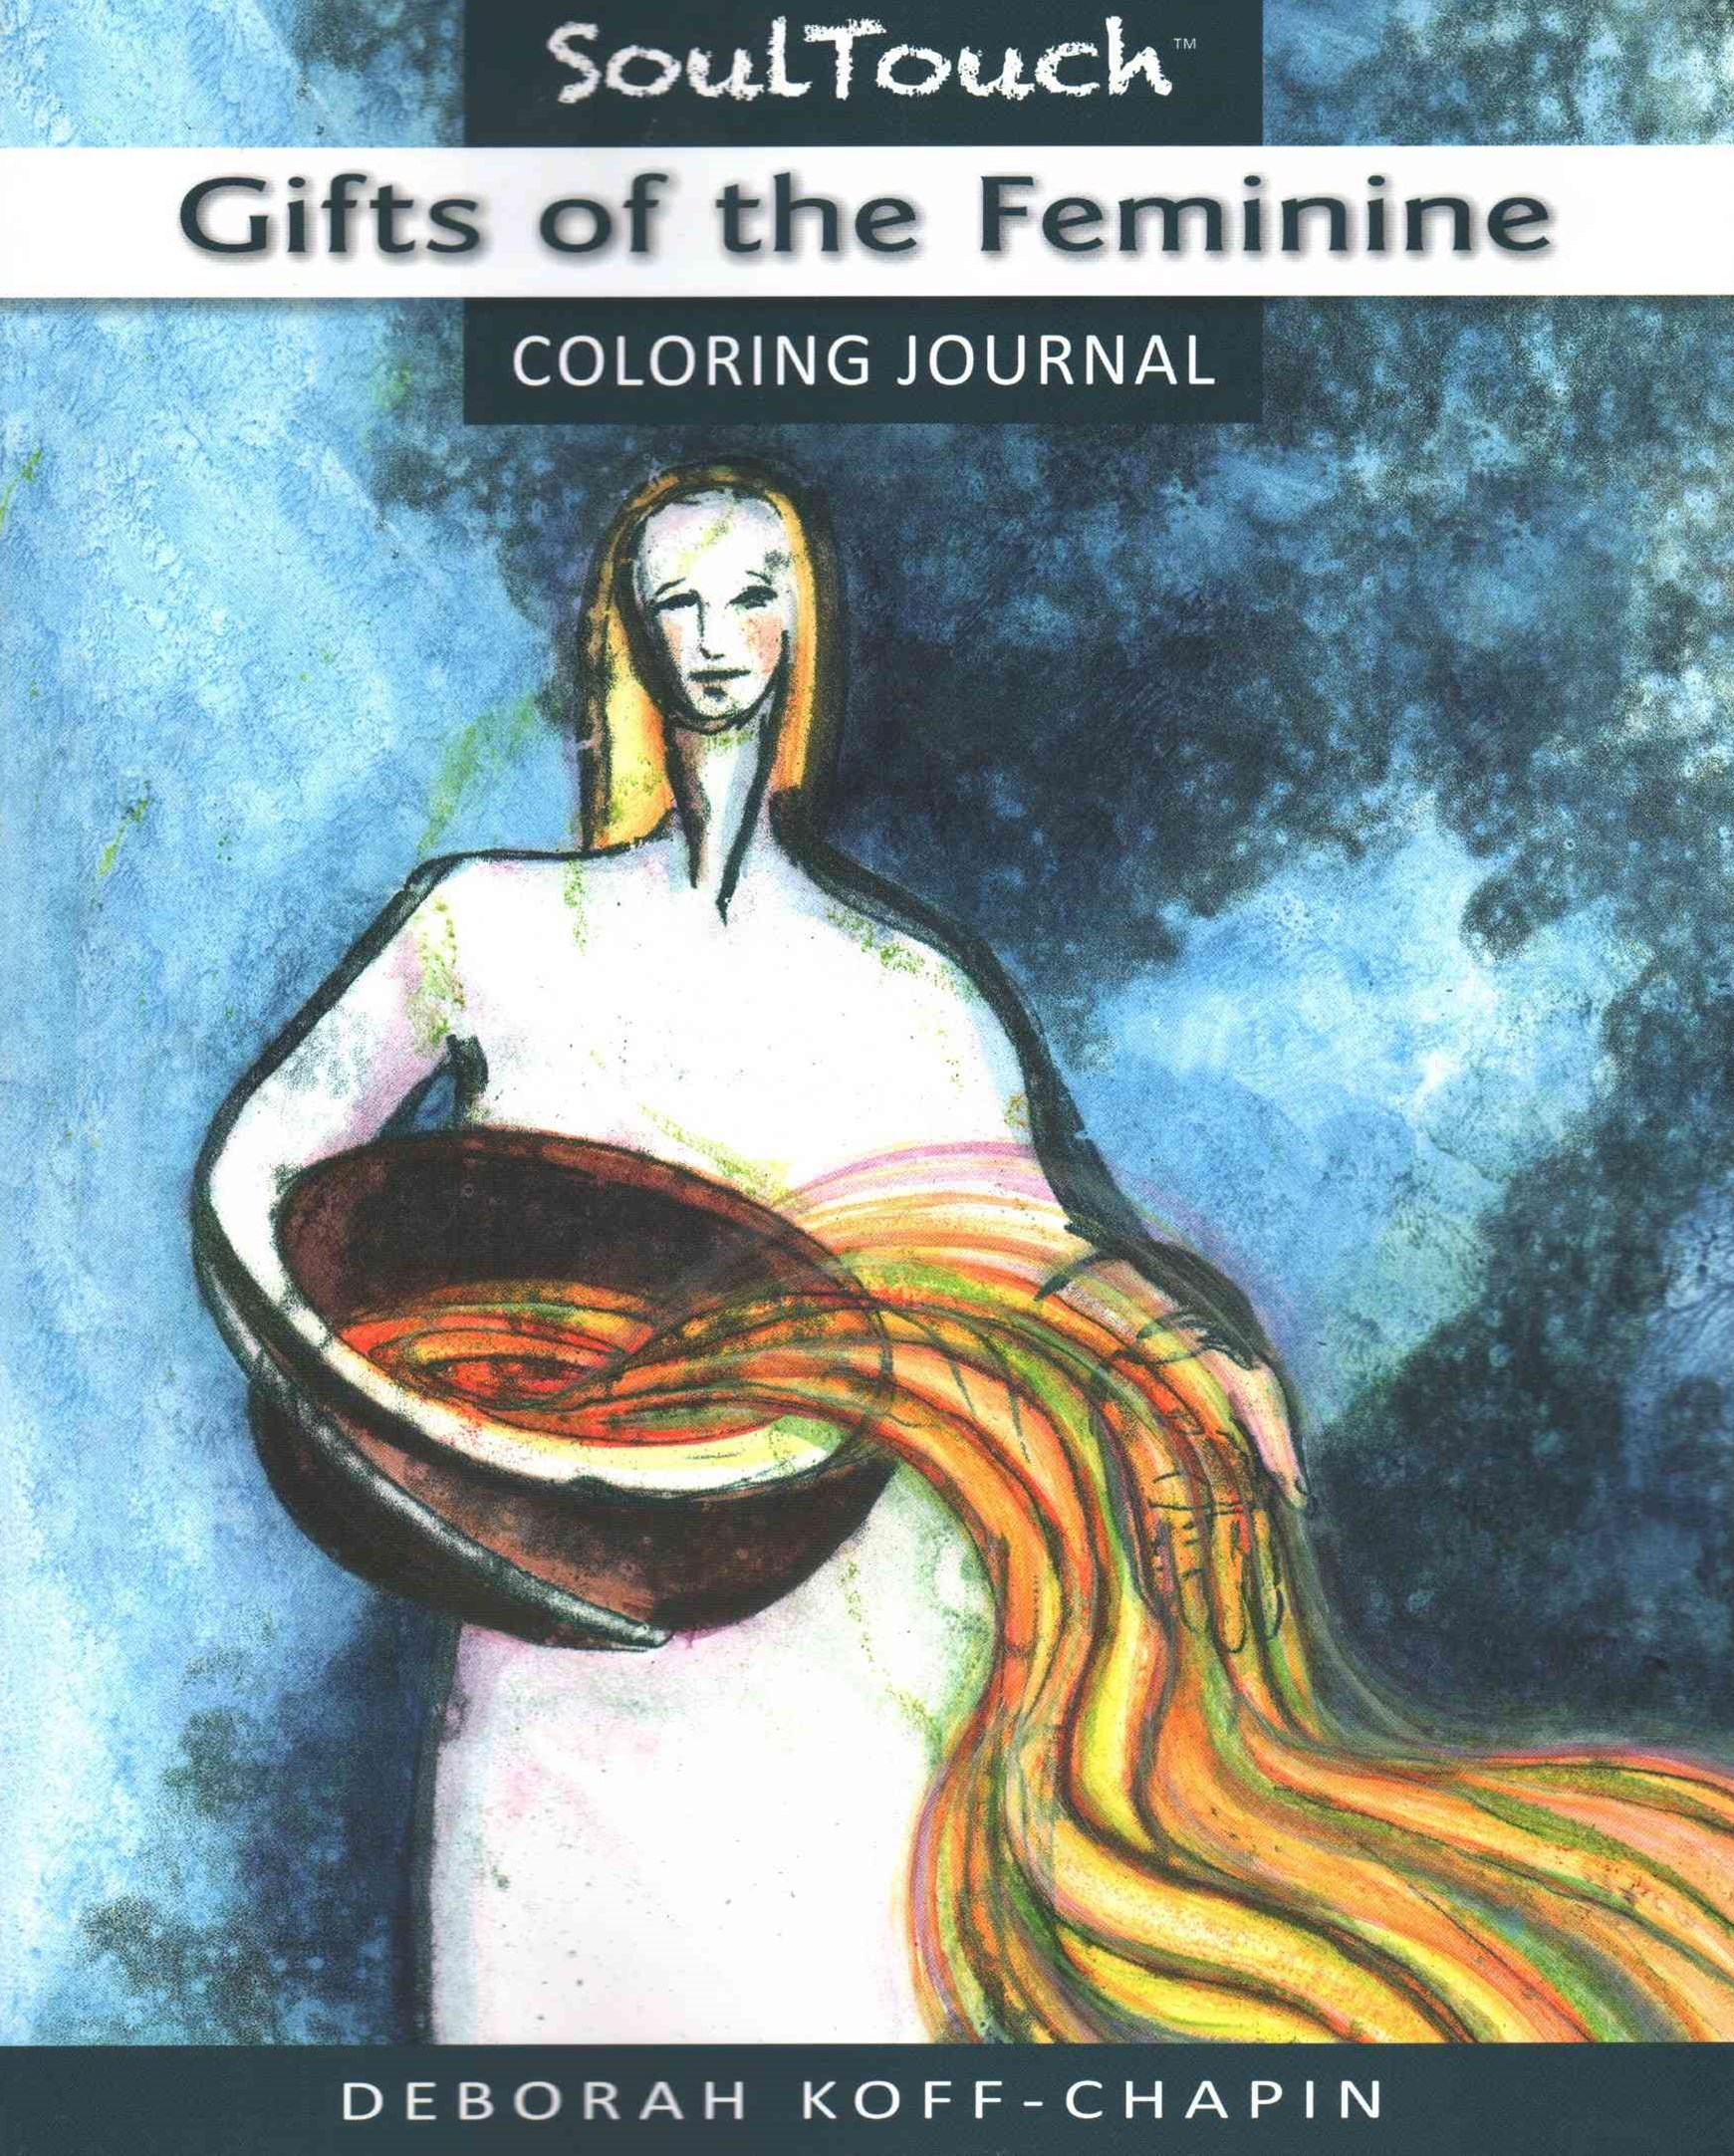 Gifts of the Feminine